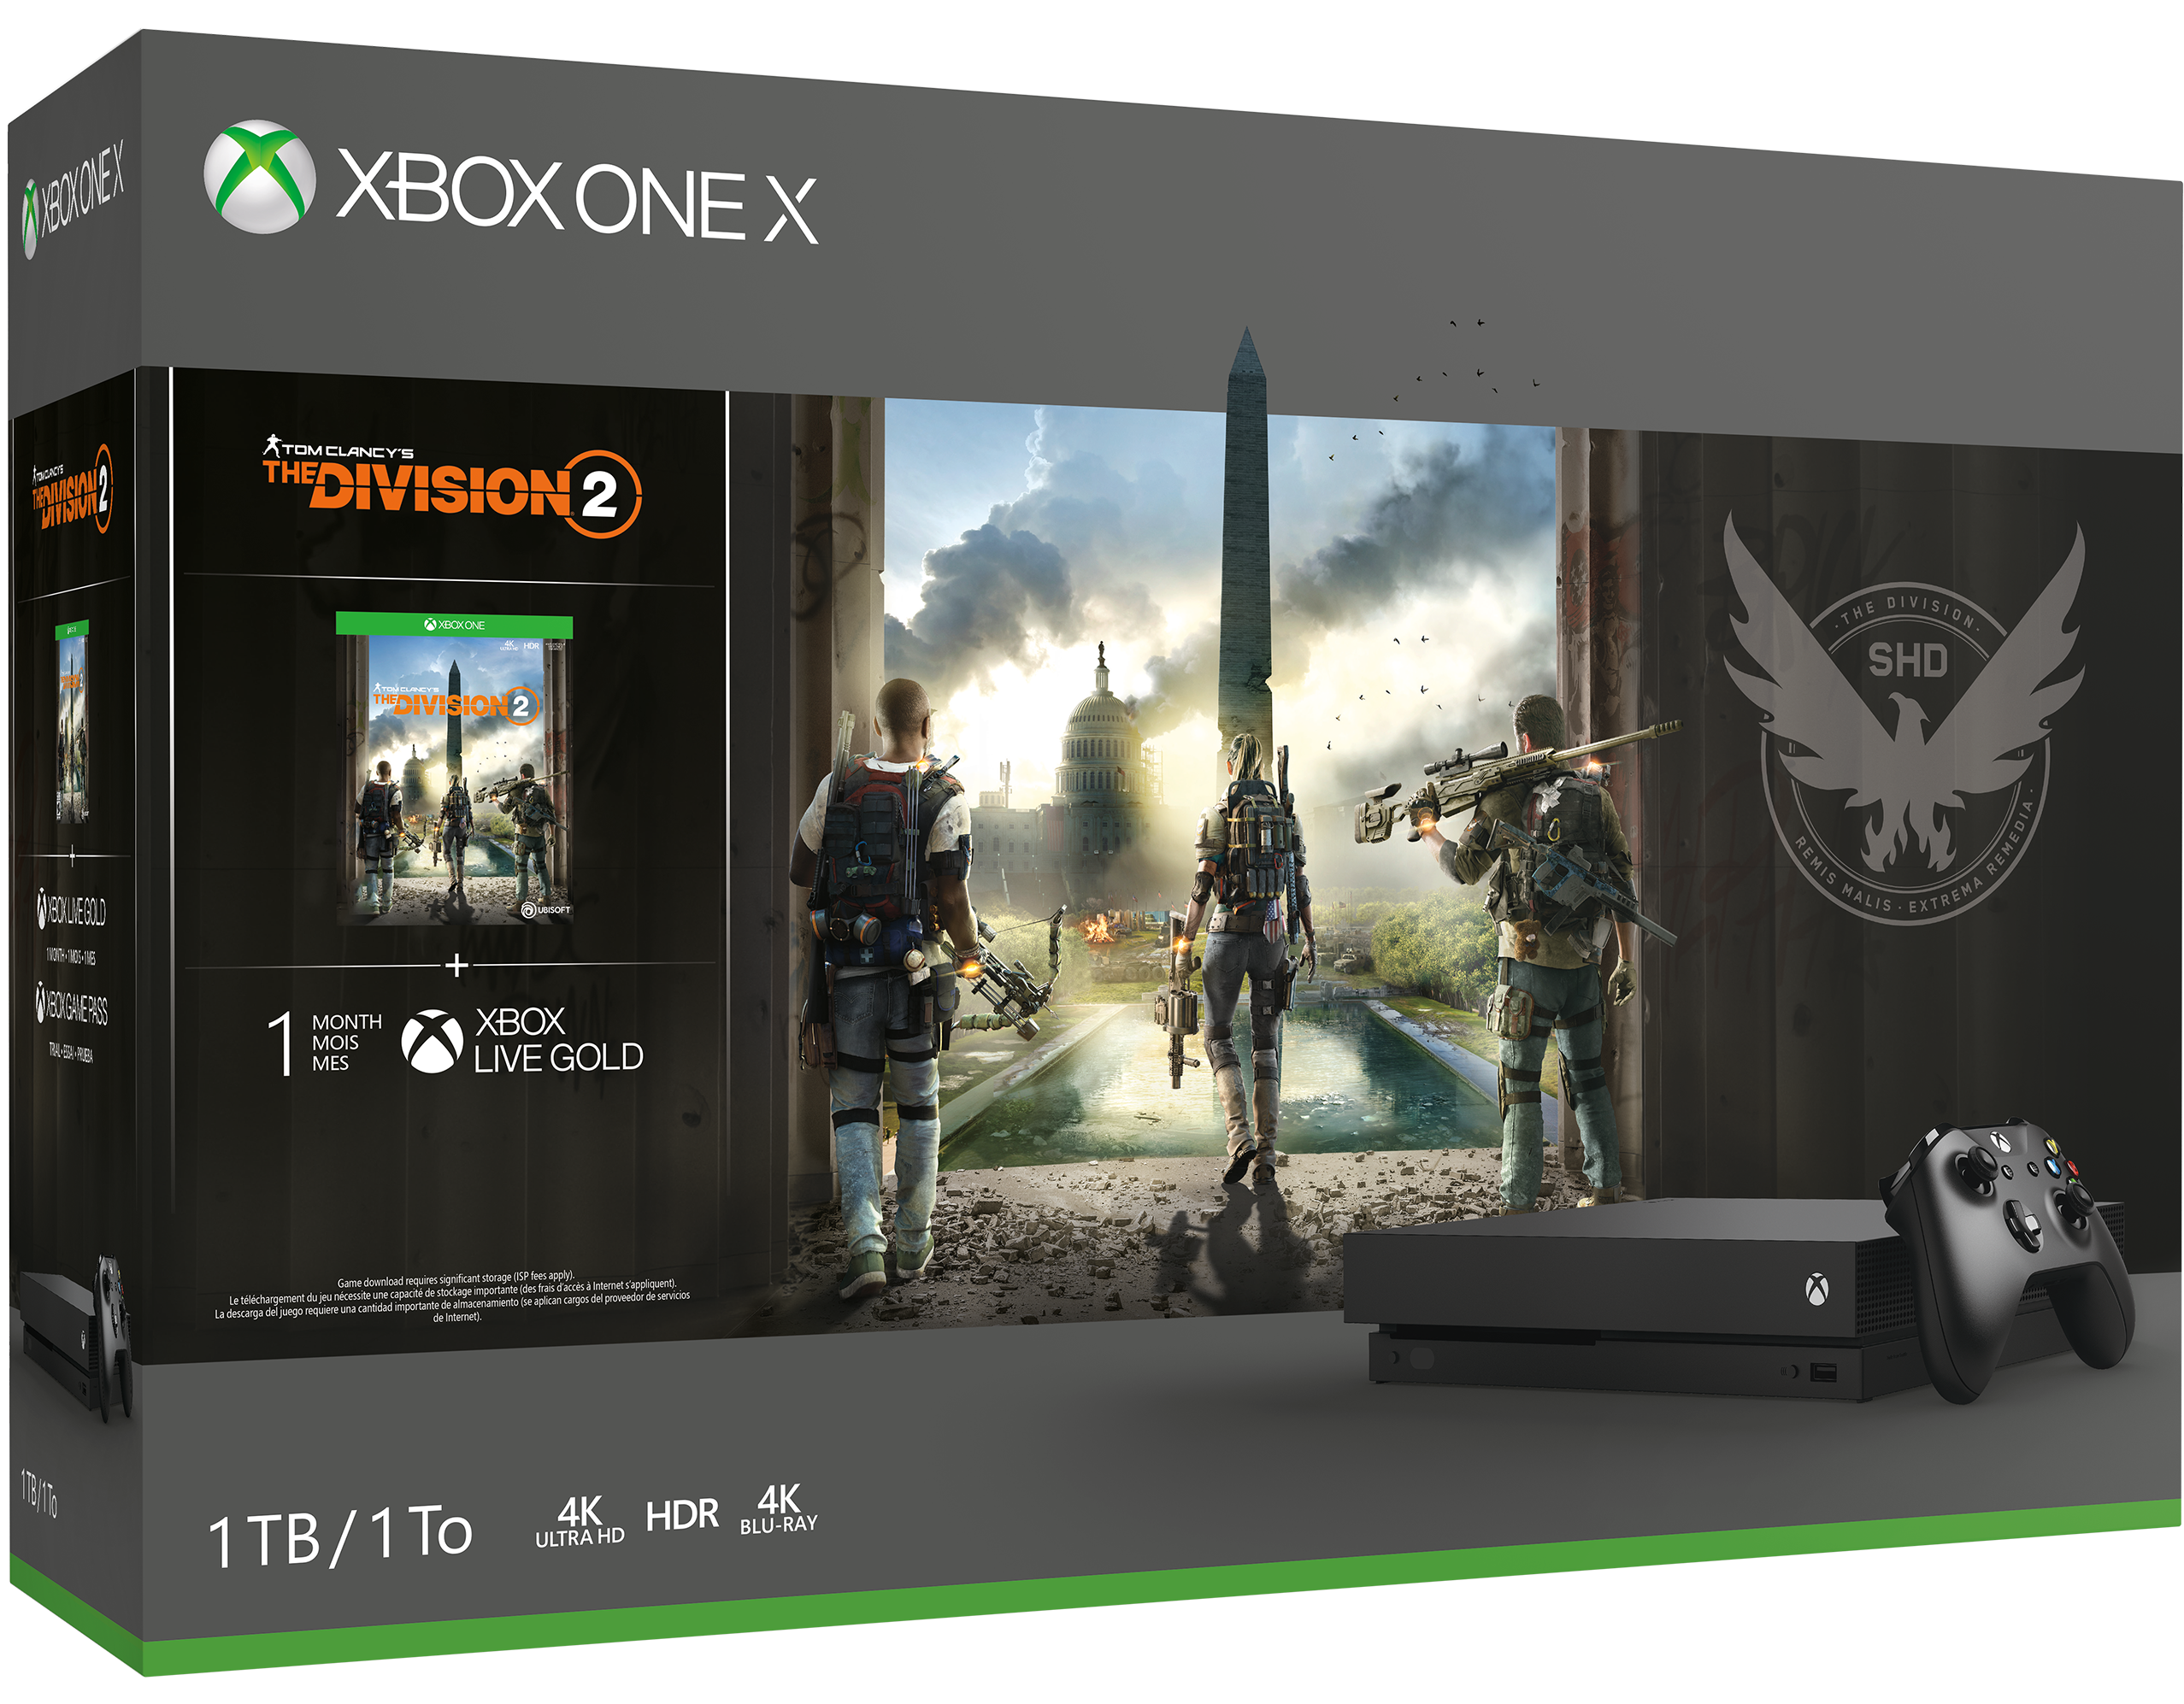 Xbox One X Tom Clancy's The Division 2 bundle box art